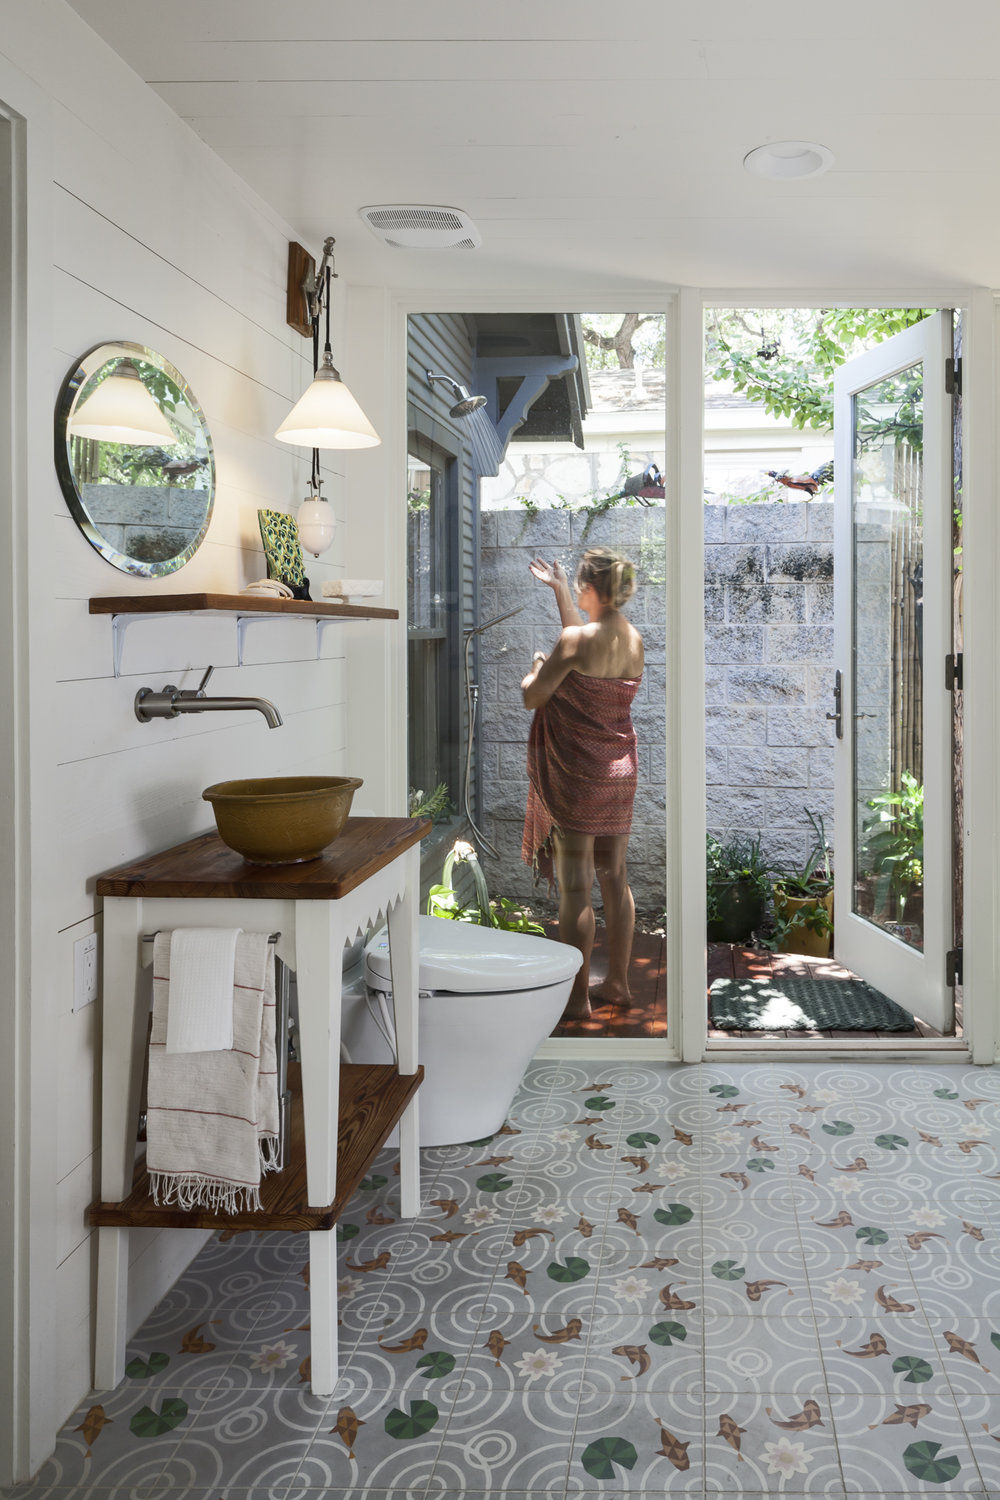 Elizabeth-Baird-Architecture-Annie Street-outdoor shower.jpg